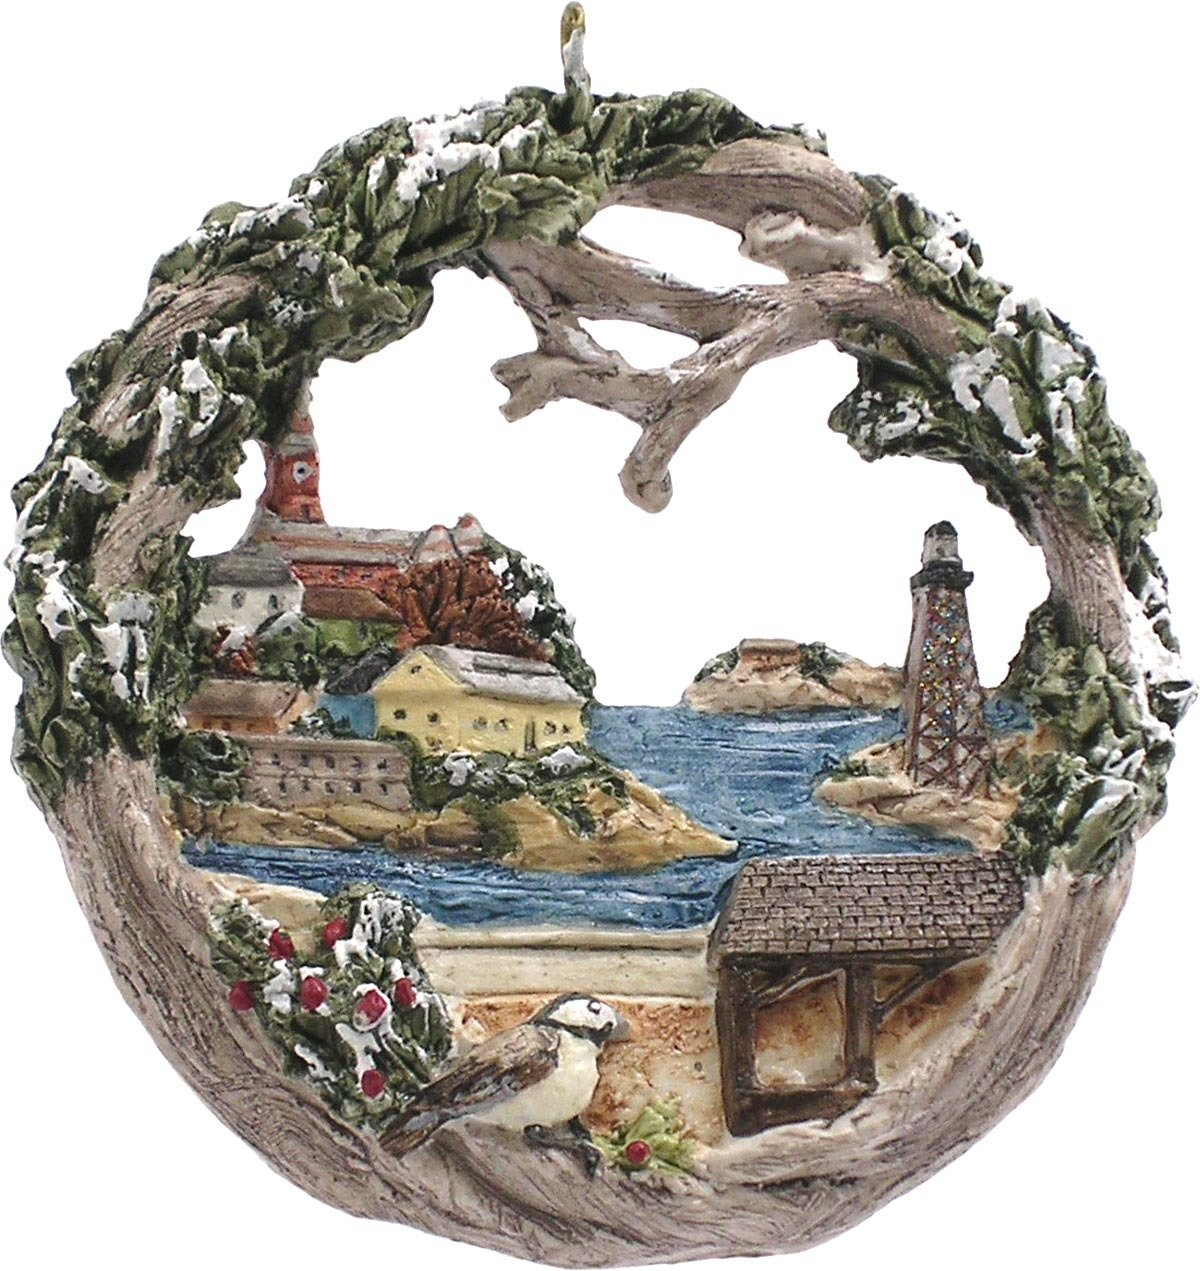 2007 Marblehead Annual Ornament  - Harbor from the Causeway MA-MARB-AS-03669WYX07